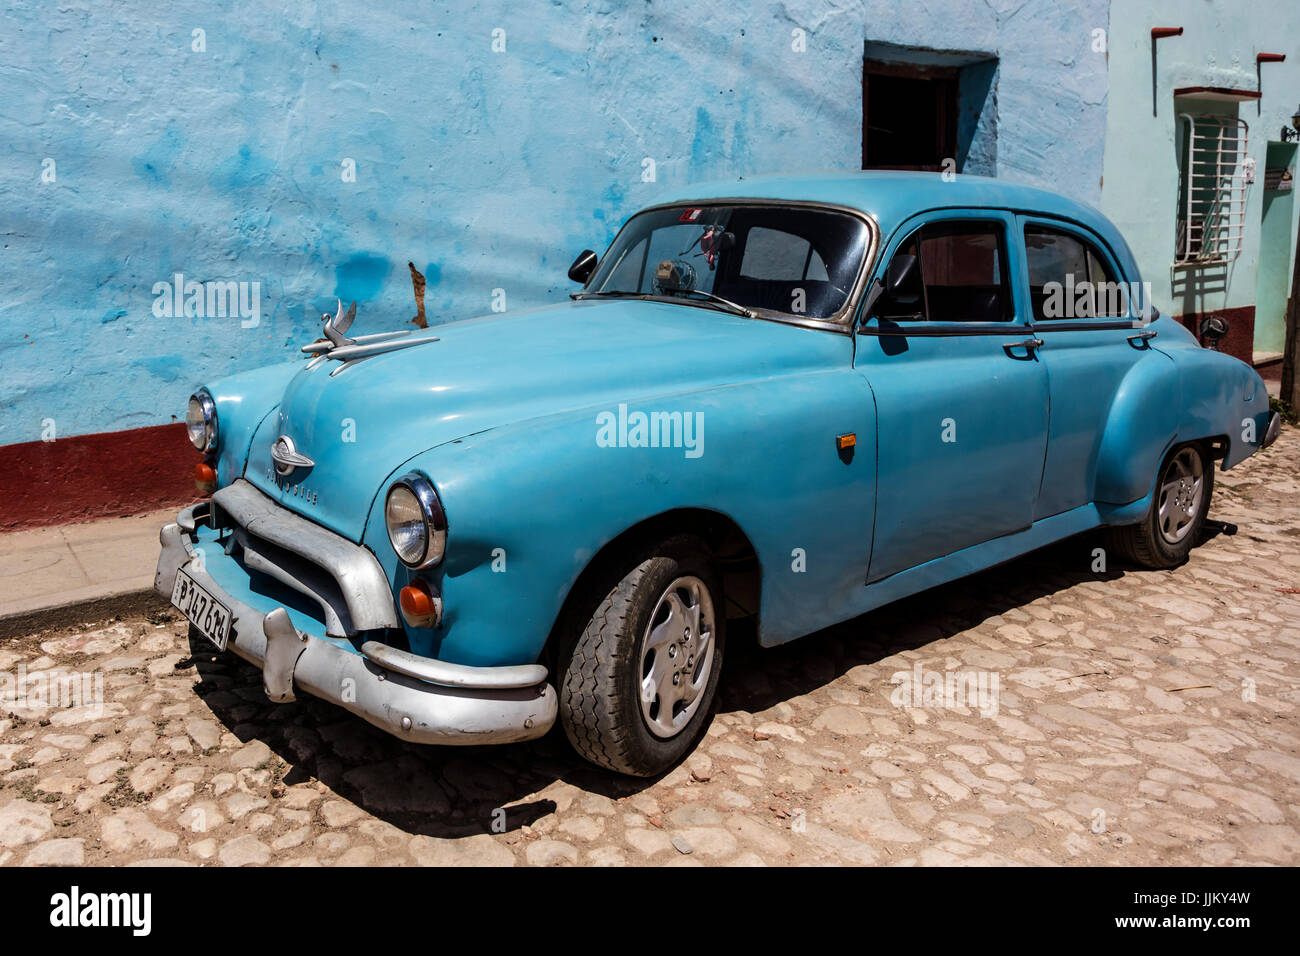 CLASSIC AMERICAN CARS are part of the charm of TRINIDAD, CUBA - Stock Image